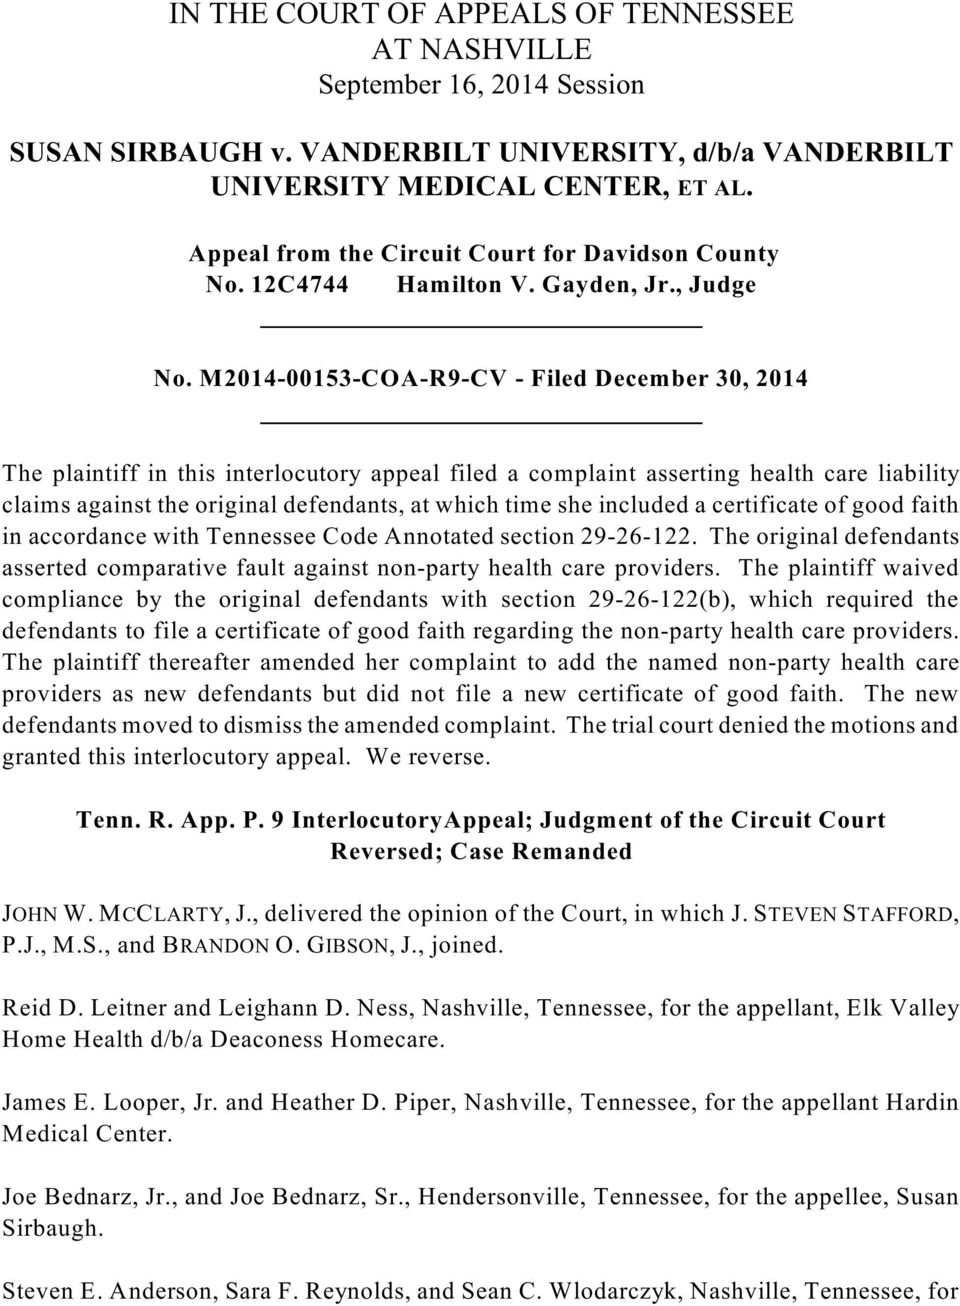 M2014-00153-COA-R9-CV - Filed December 30, 2014 The plaintiff in this interlocutory appeal filed a complaint asserting health care liability claims against the original defendants, at which time she